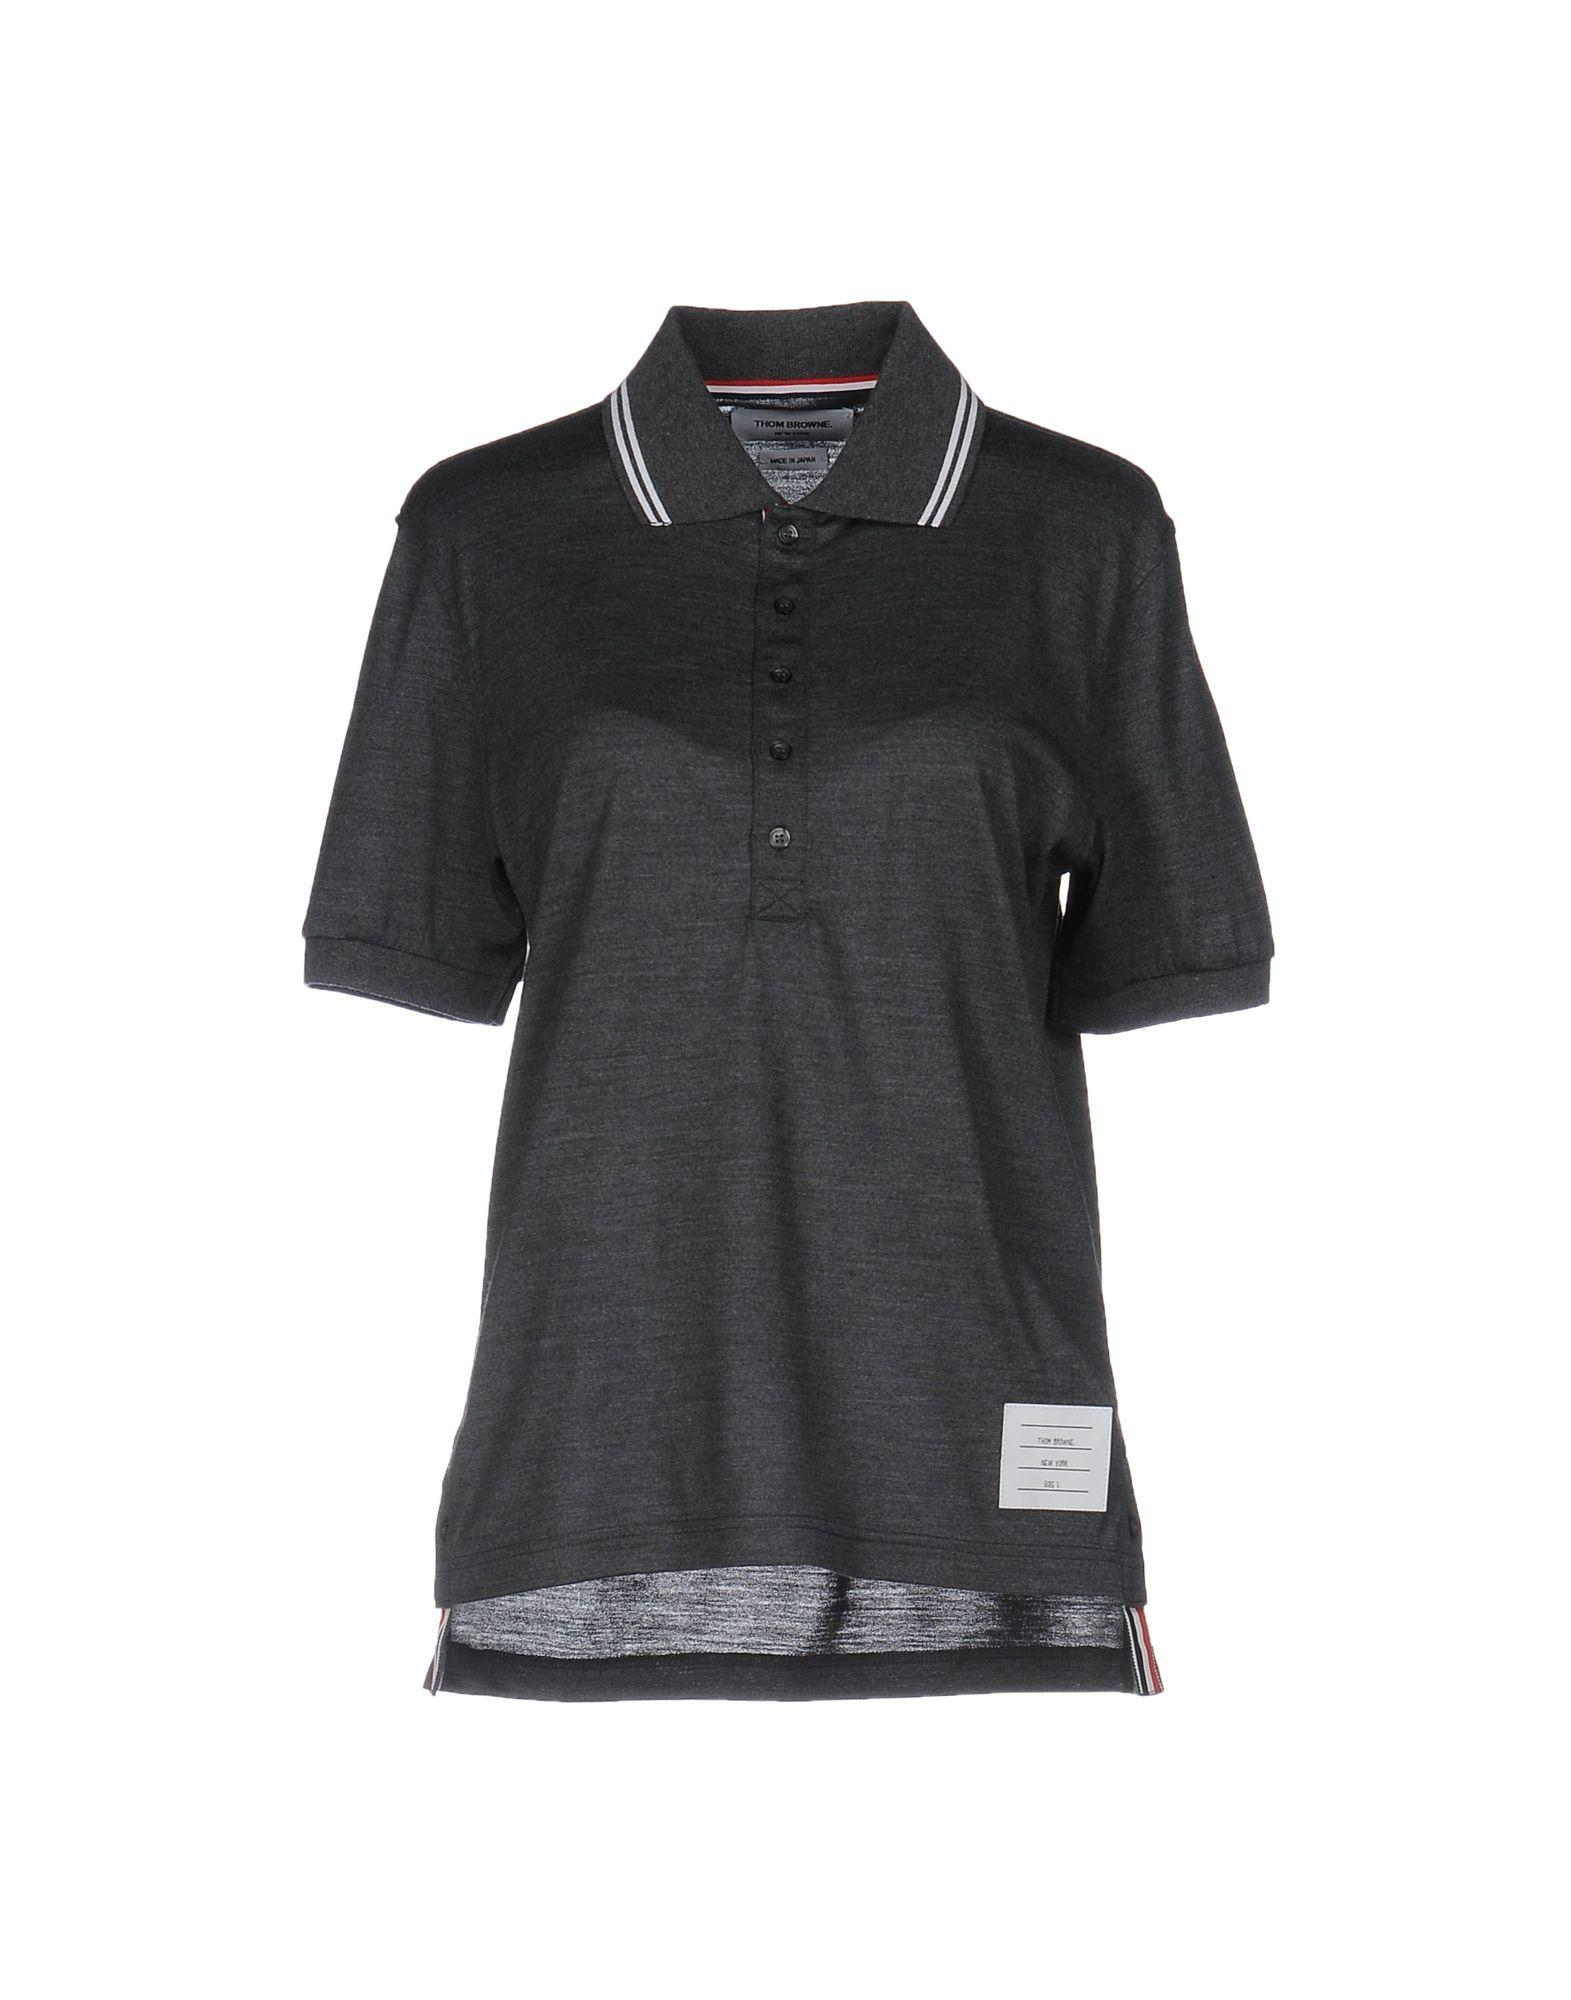 Thom browne polo shirt in gray lyst for Thom browne shirt sale